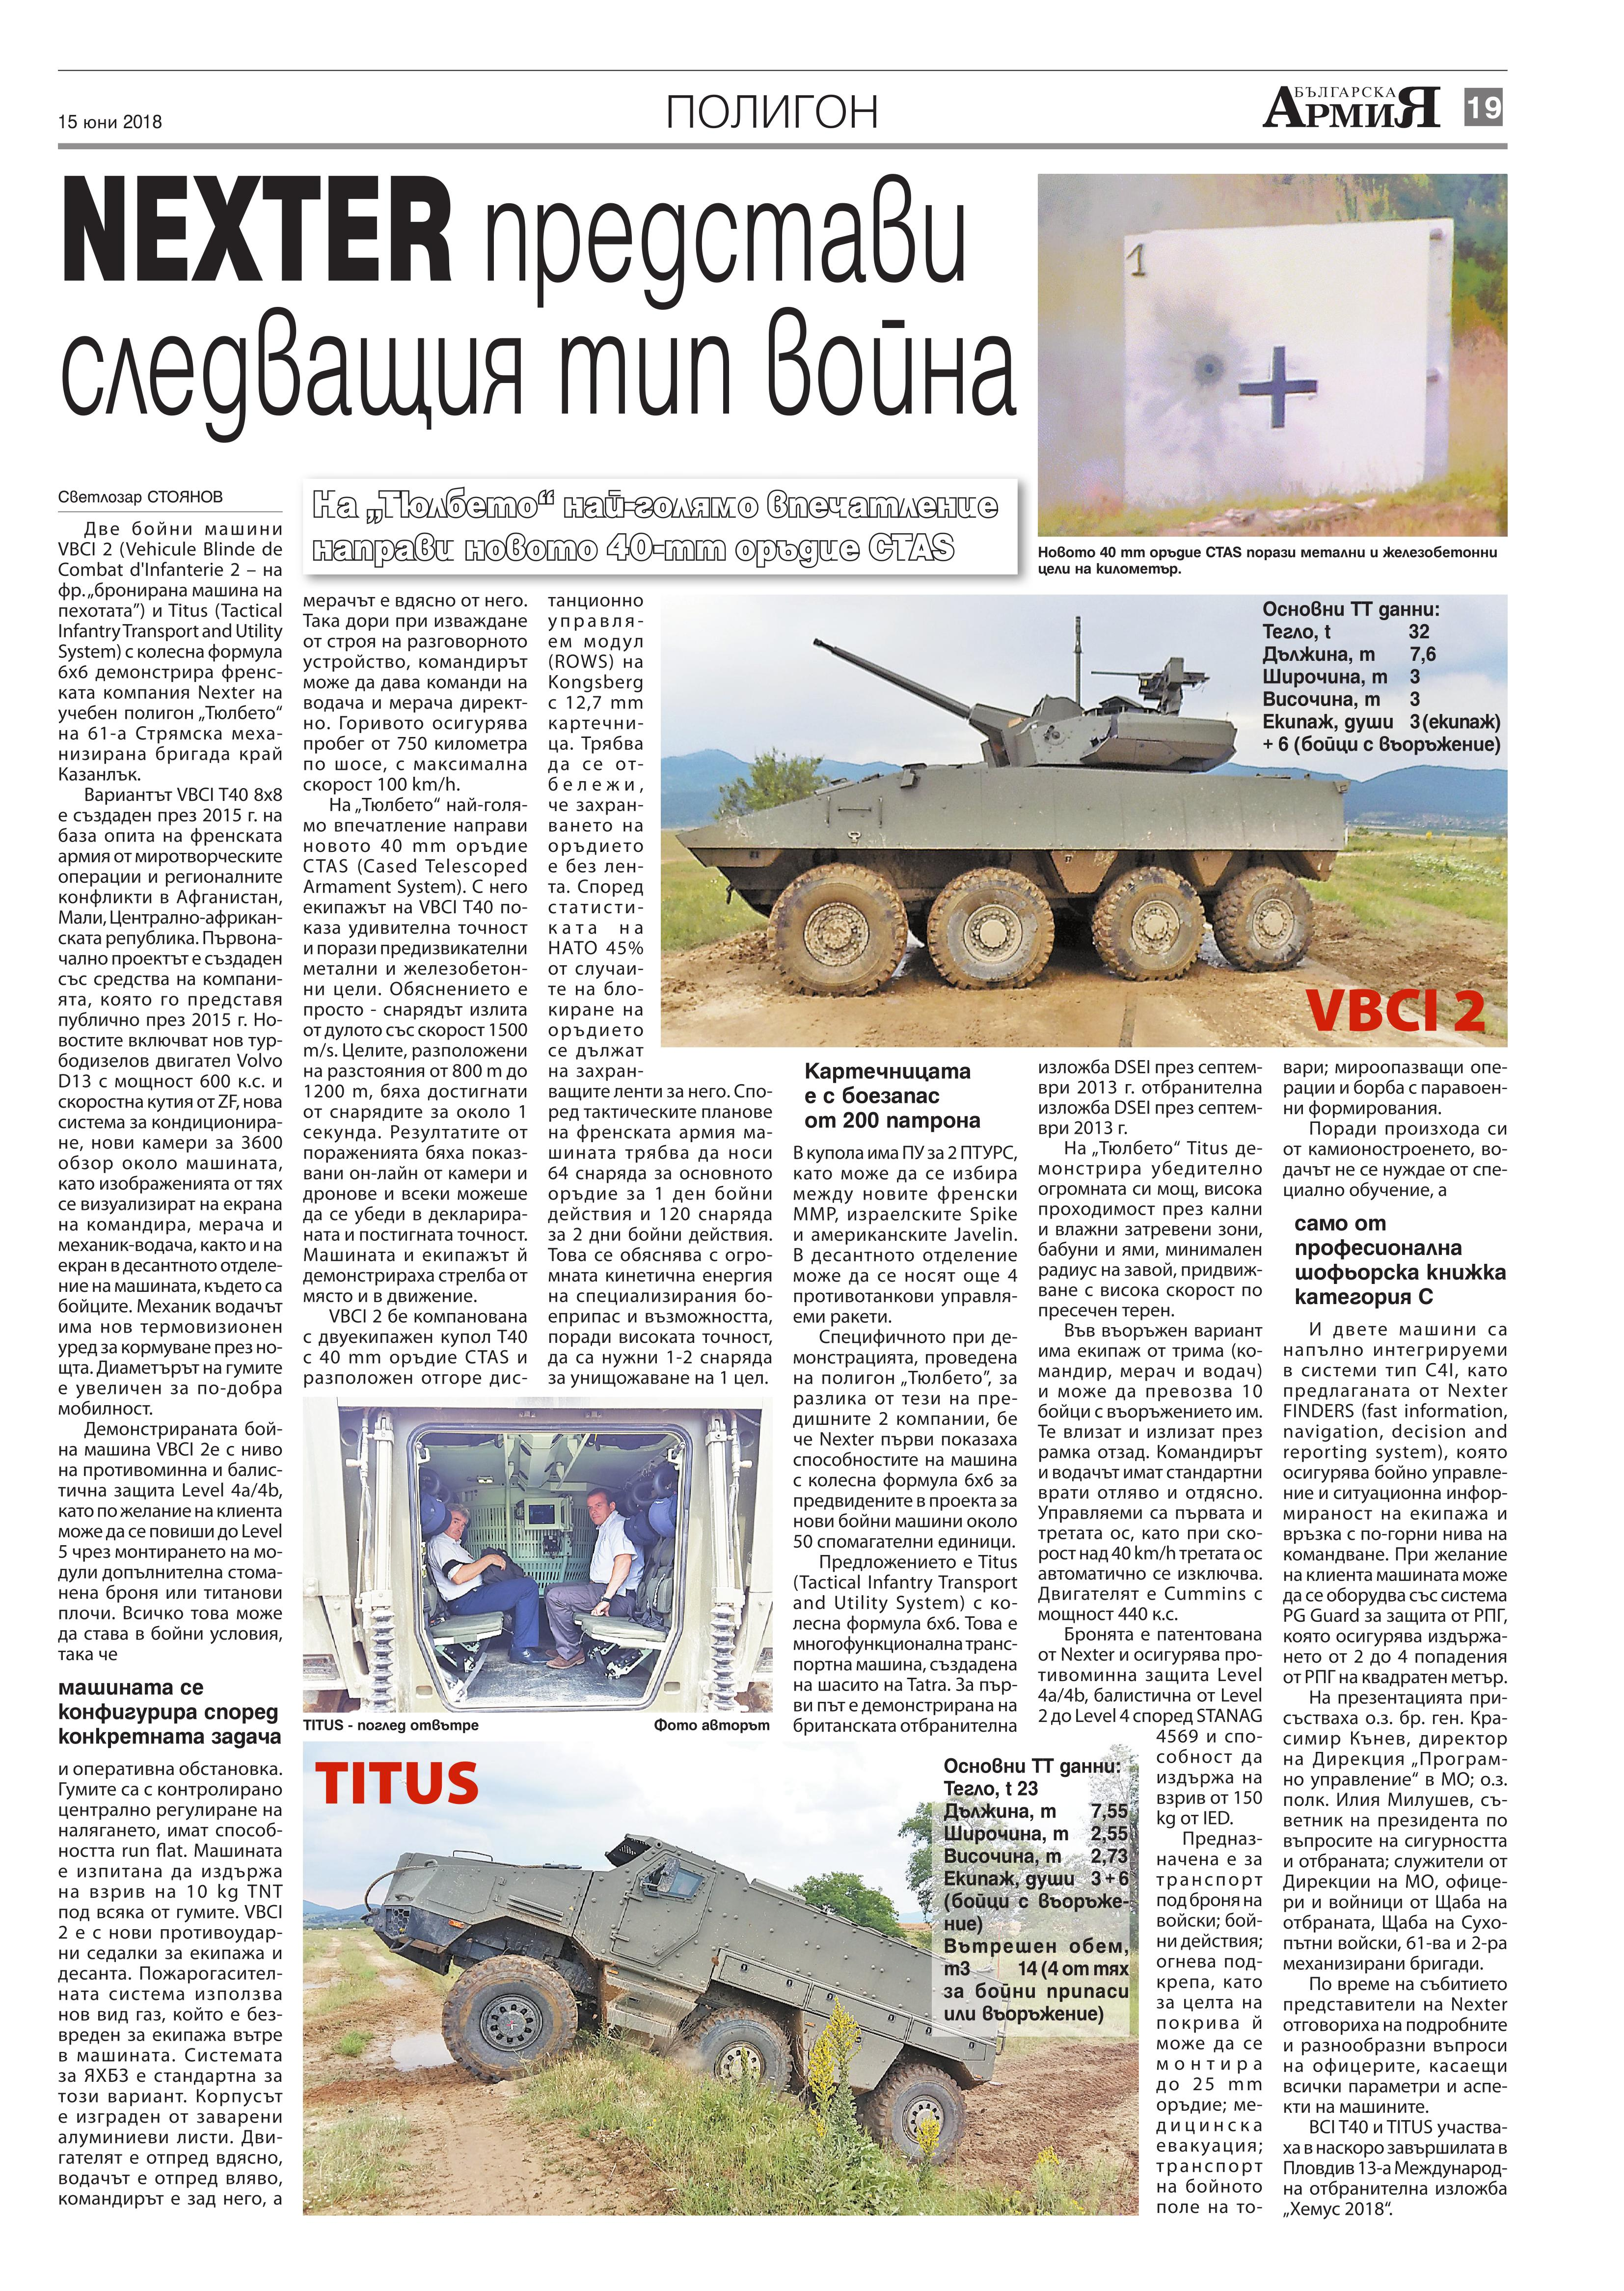 http://armymedia.bg/wp-content/uploads/2015/06/19.page1_-55.jpg